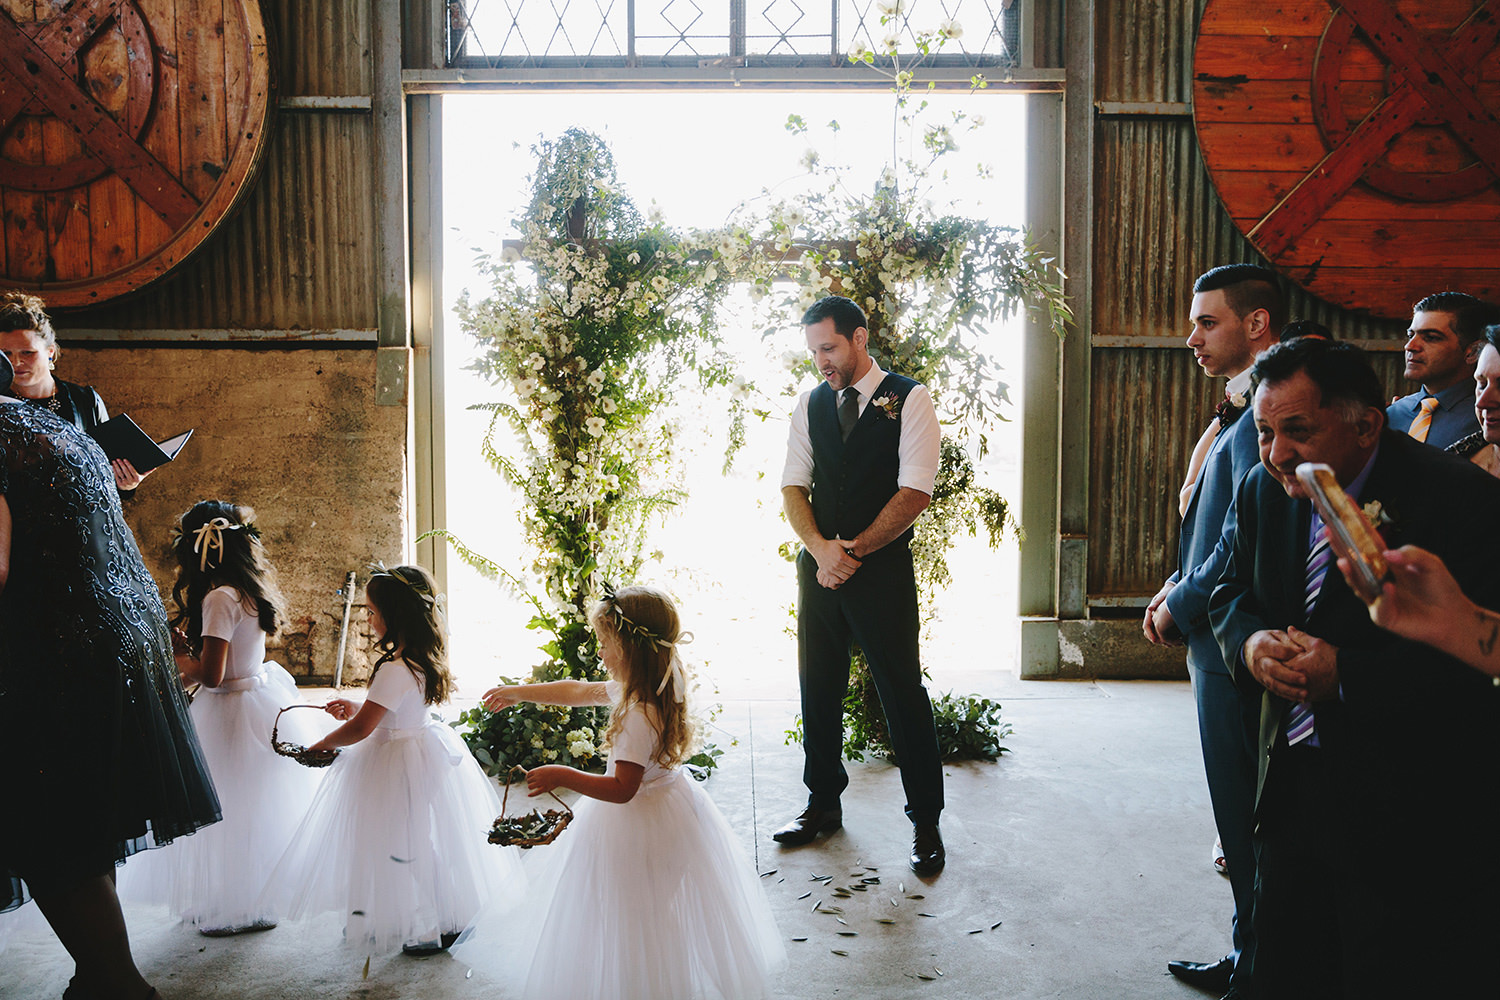 Melbourne_Winery_Wedding_Chris_Merrily083.JPG